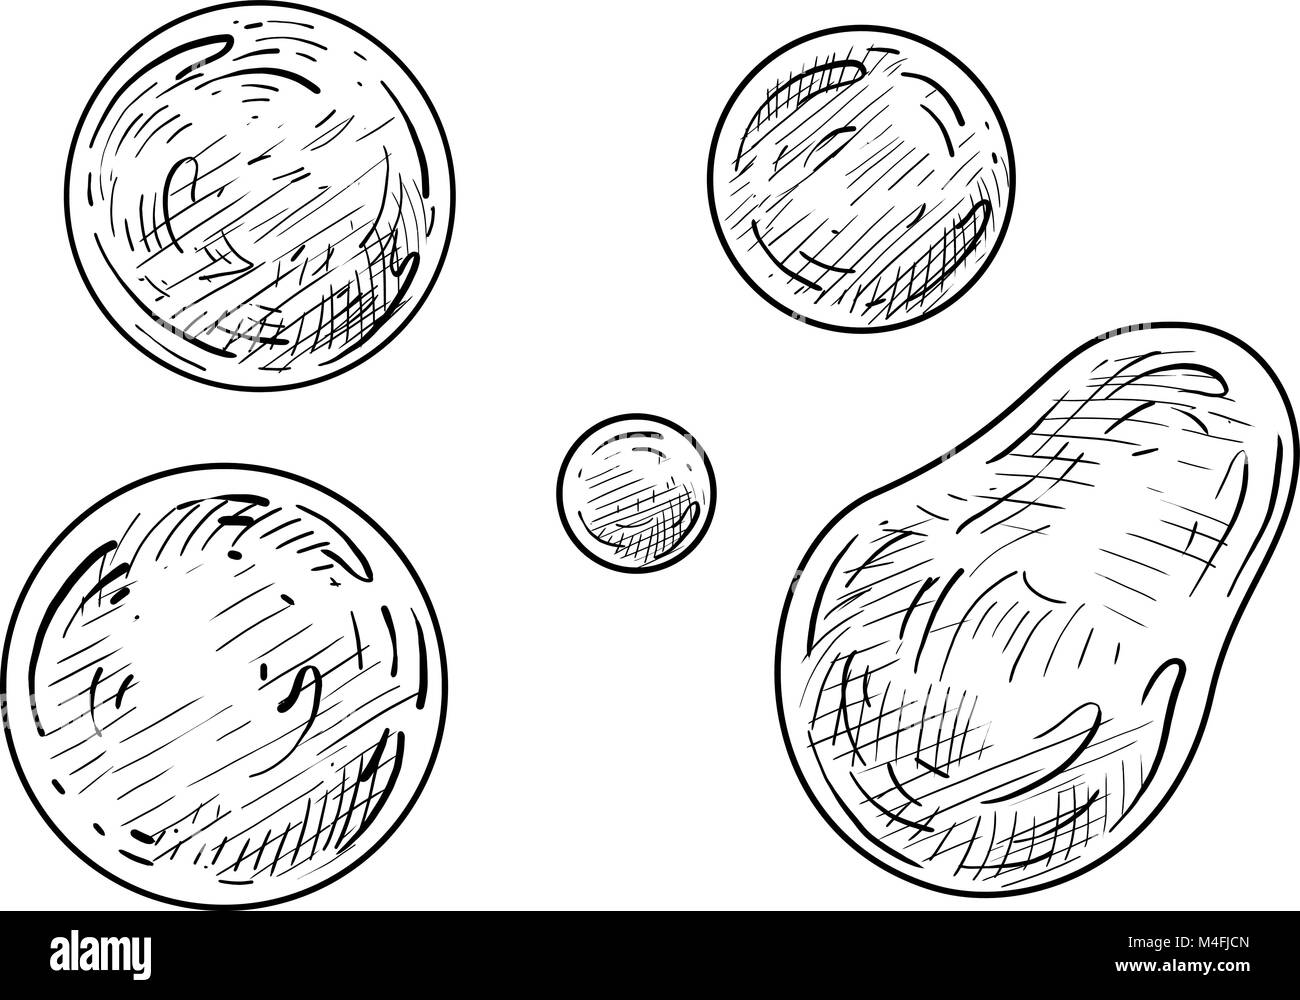 Soap bubble illustration, drawing, engraving, ink, line art, vector - Stock Vector